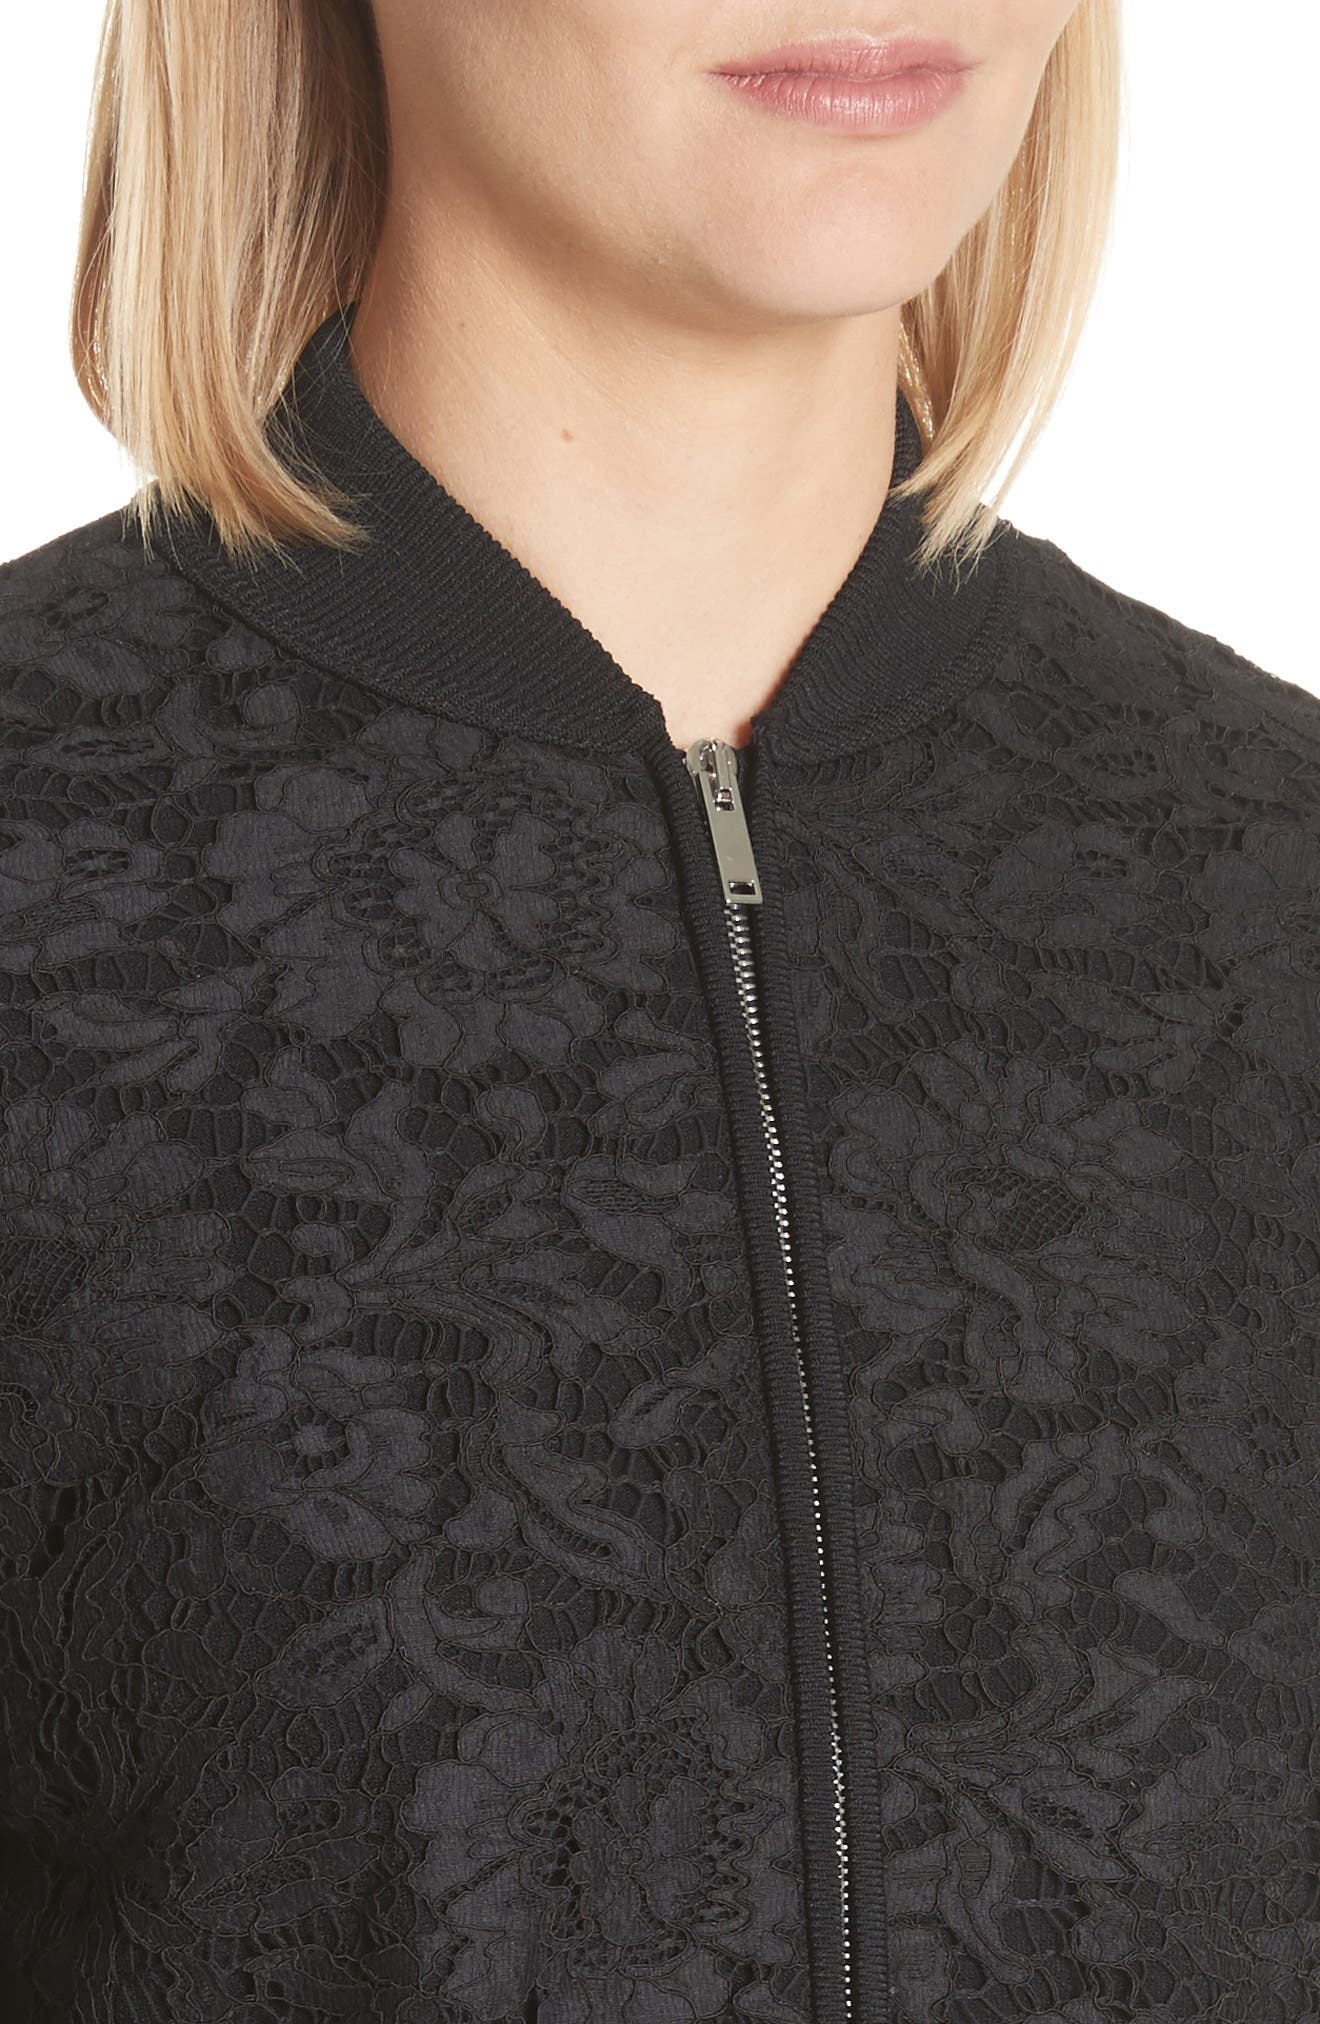 Lace Front Bomber Jacket,                             Alternate thumbnail 4, color,                             001